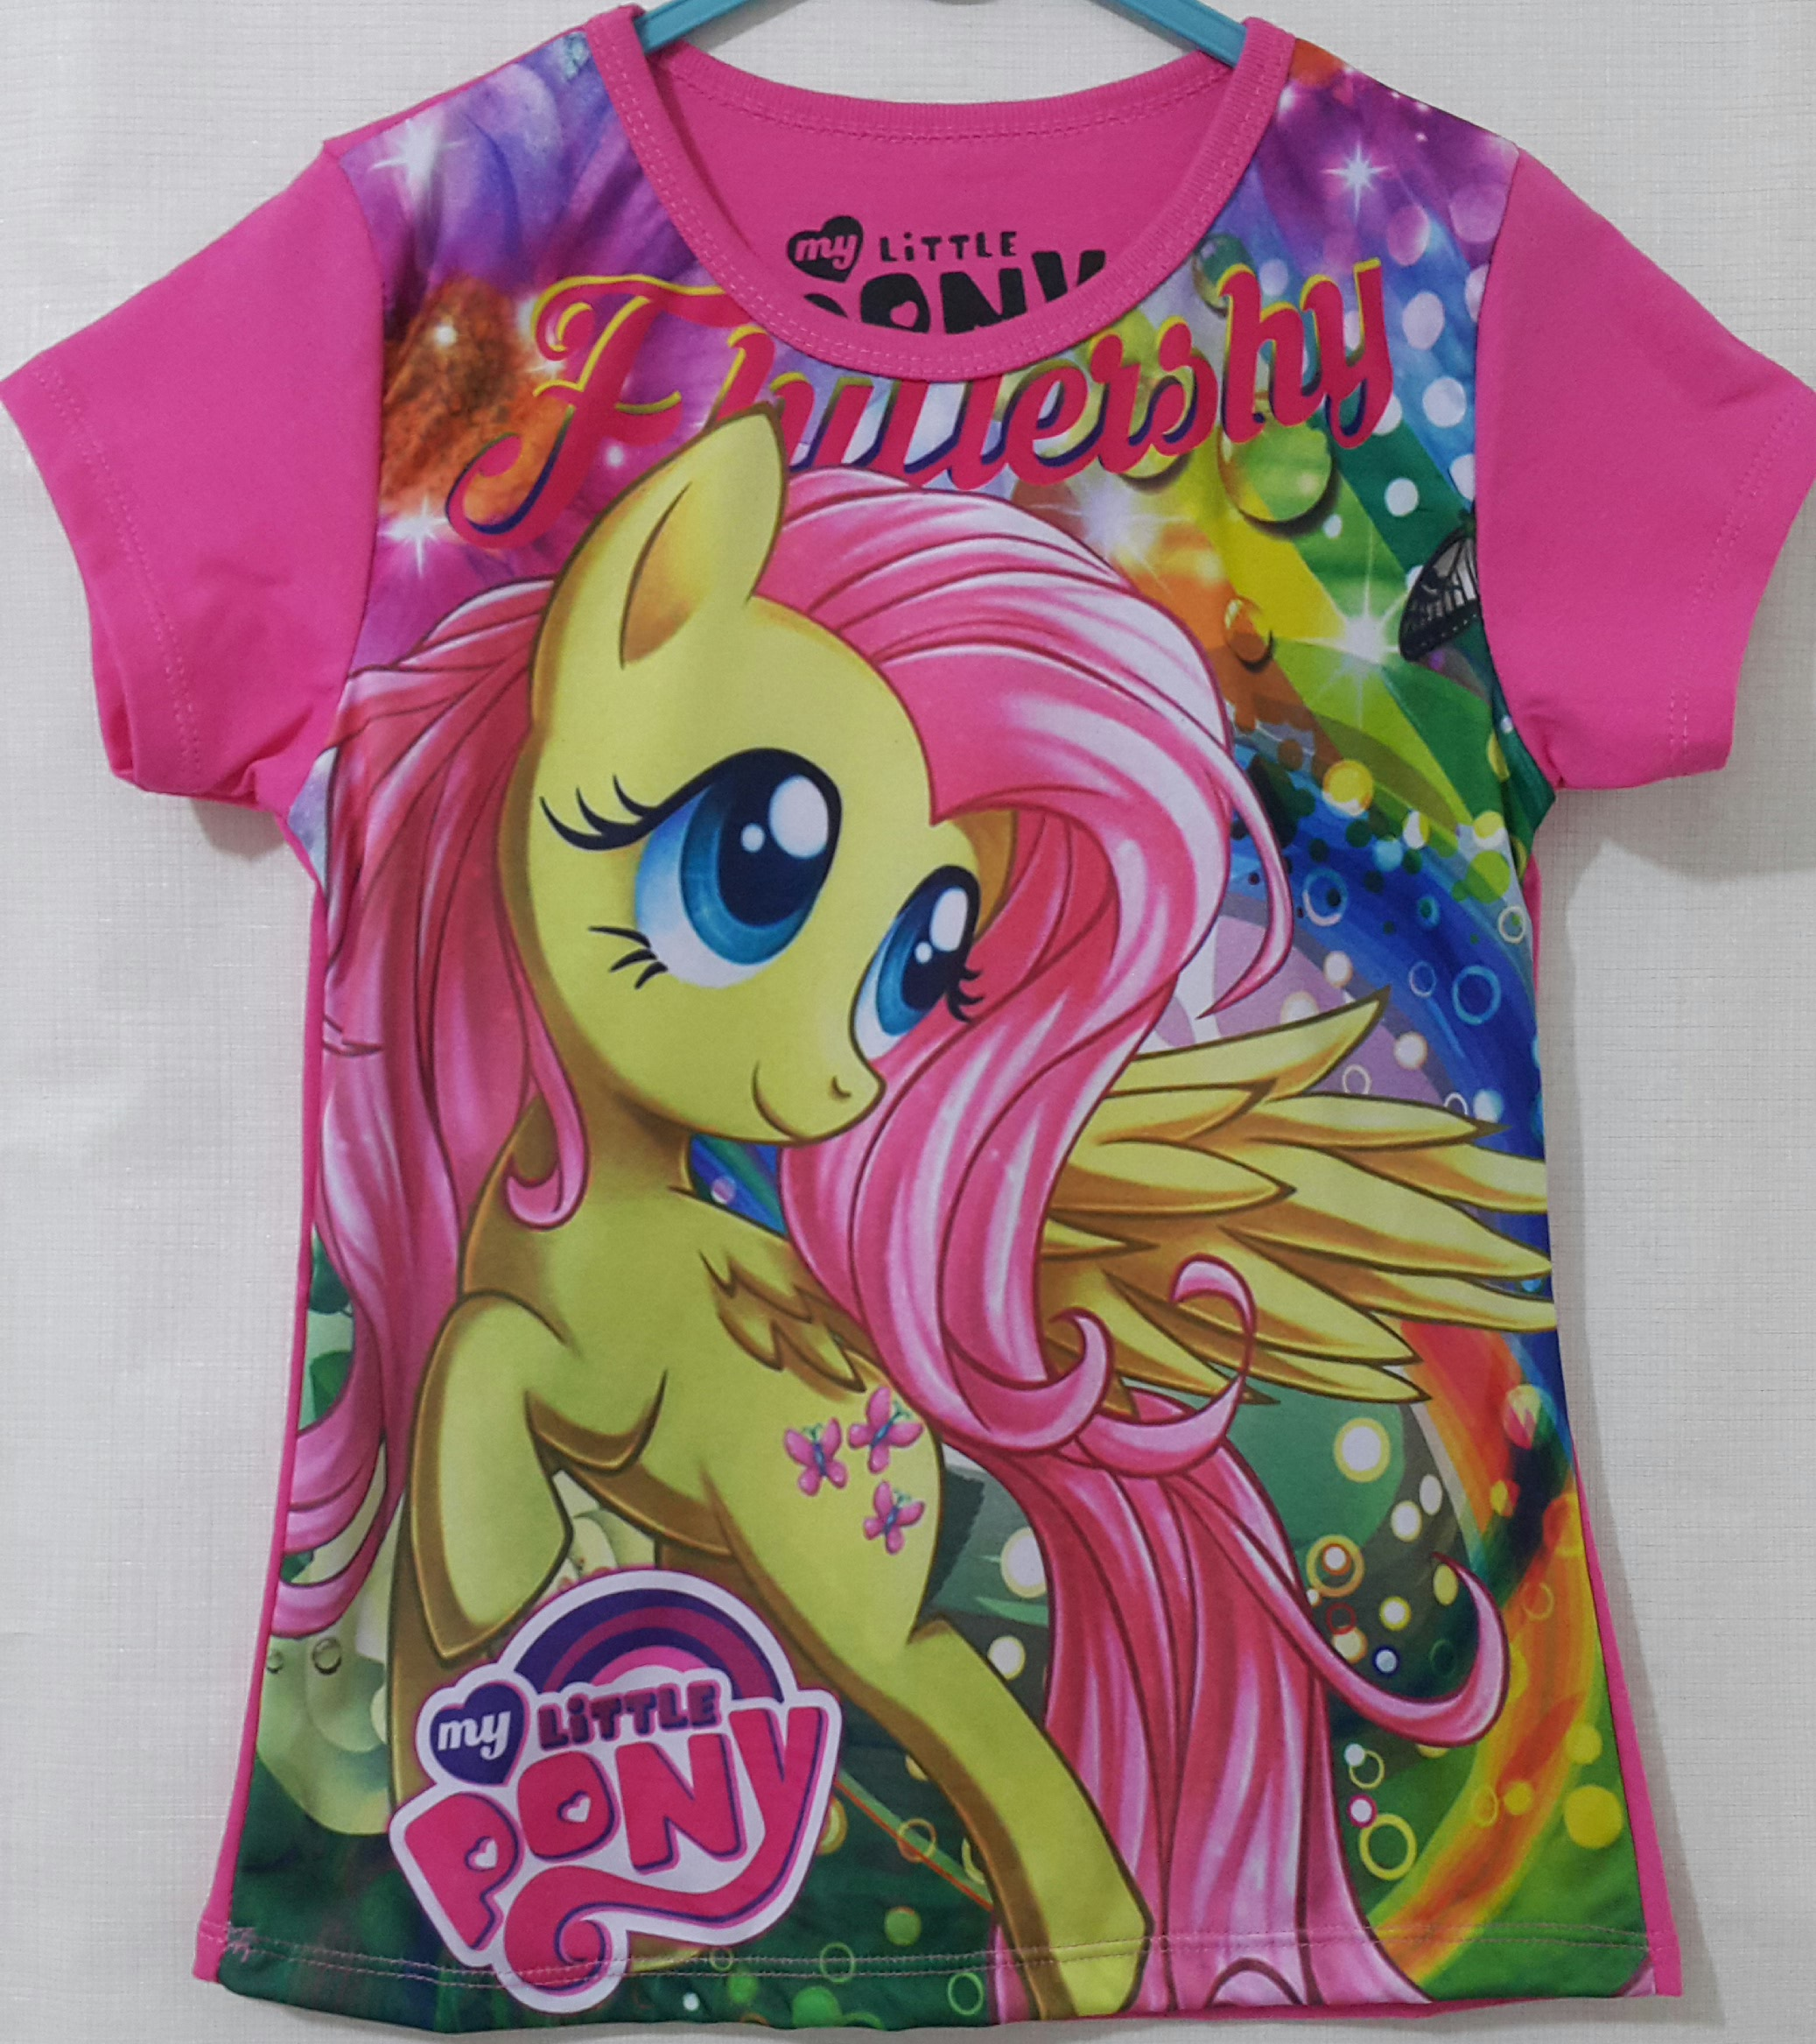 kaos little pony full print pink